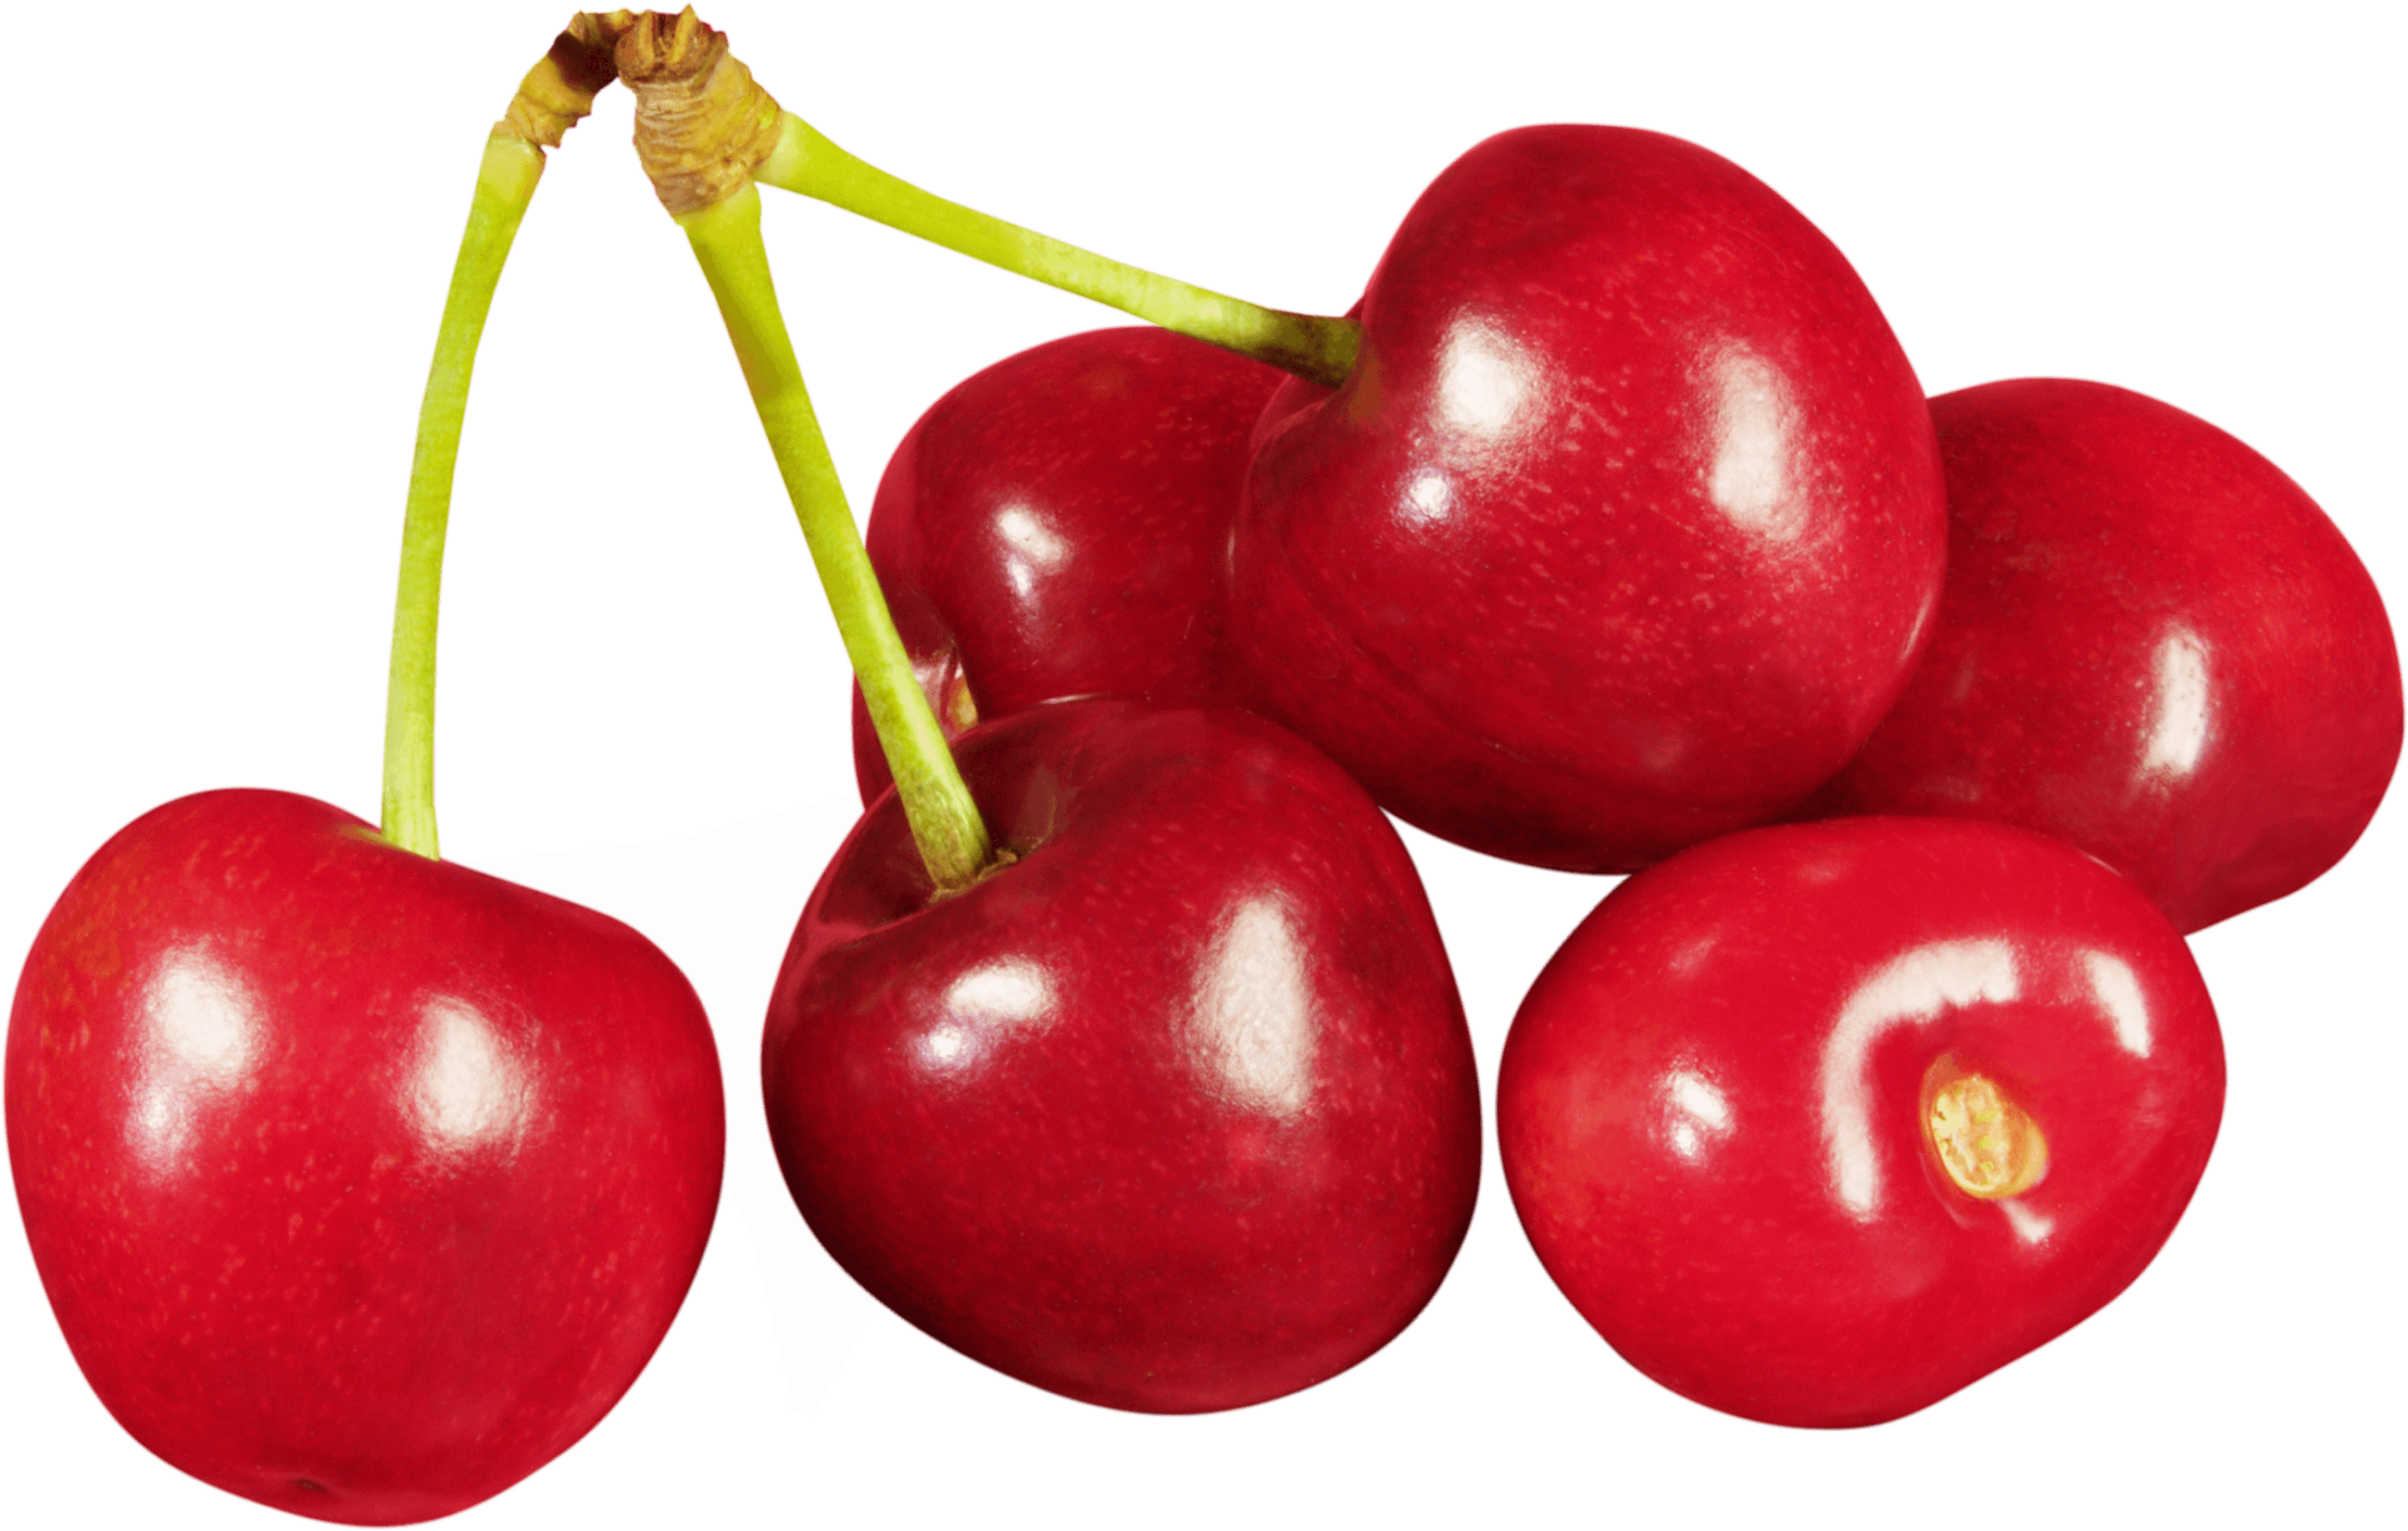 Red Cherry Png Image Download PNG Image - Cherry HD PNG